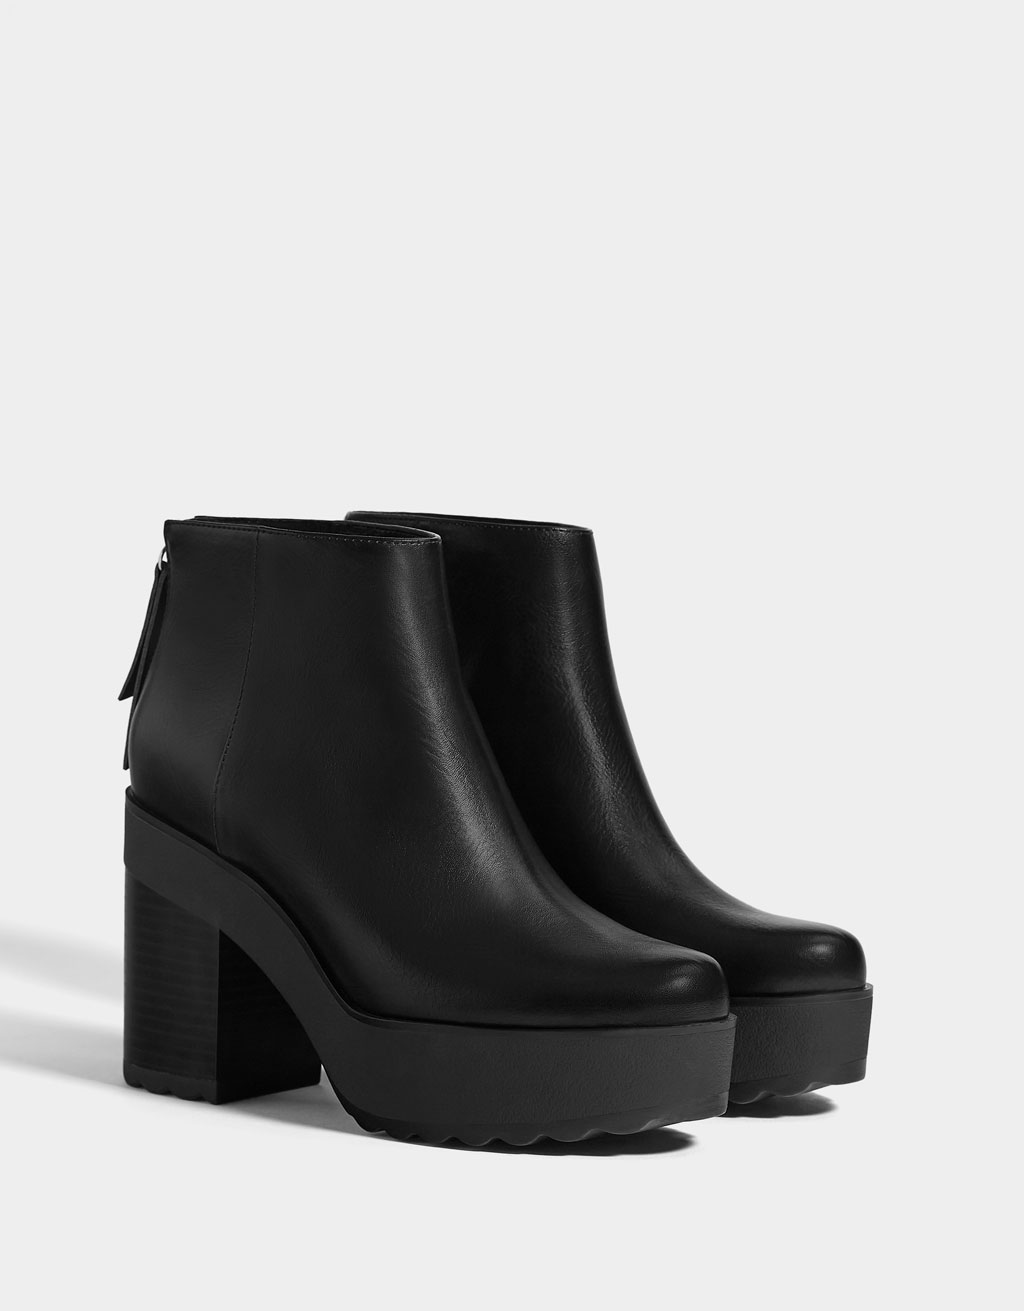 Platform ankle boots with zippers